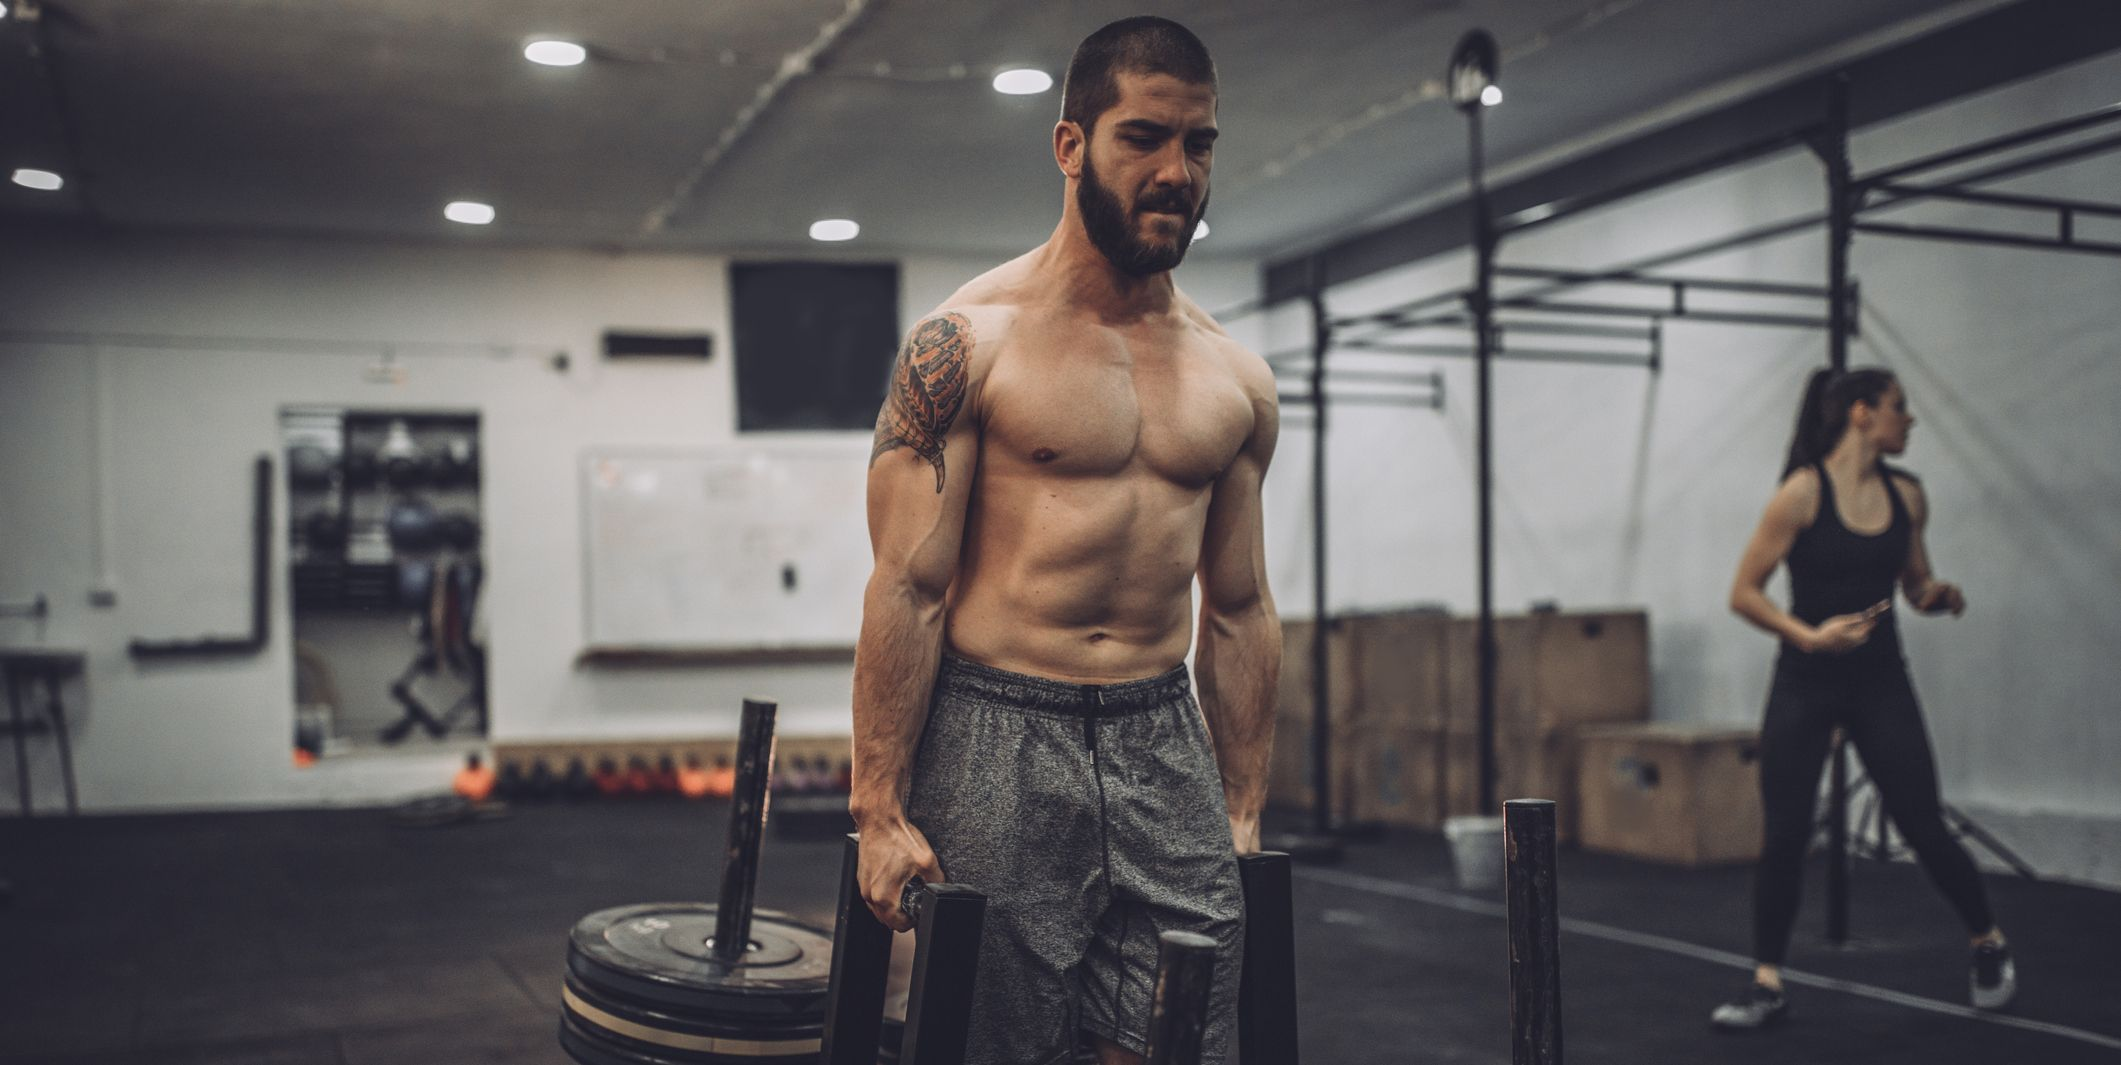 Shirtless man training hard